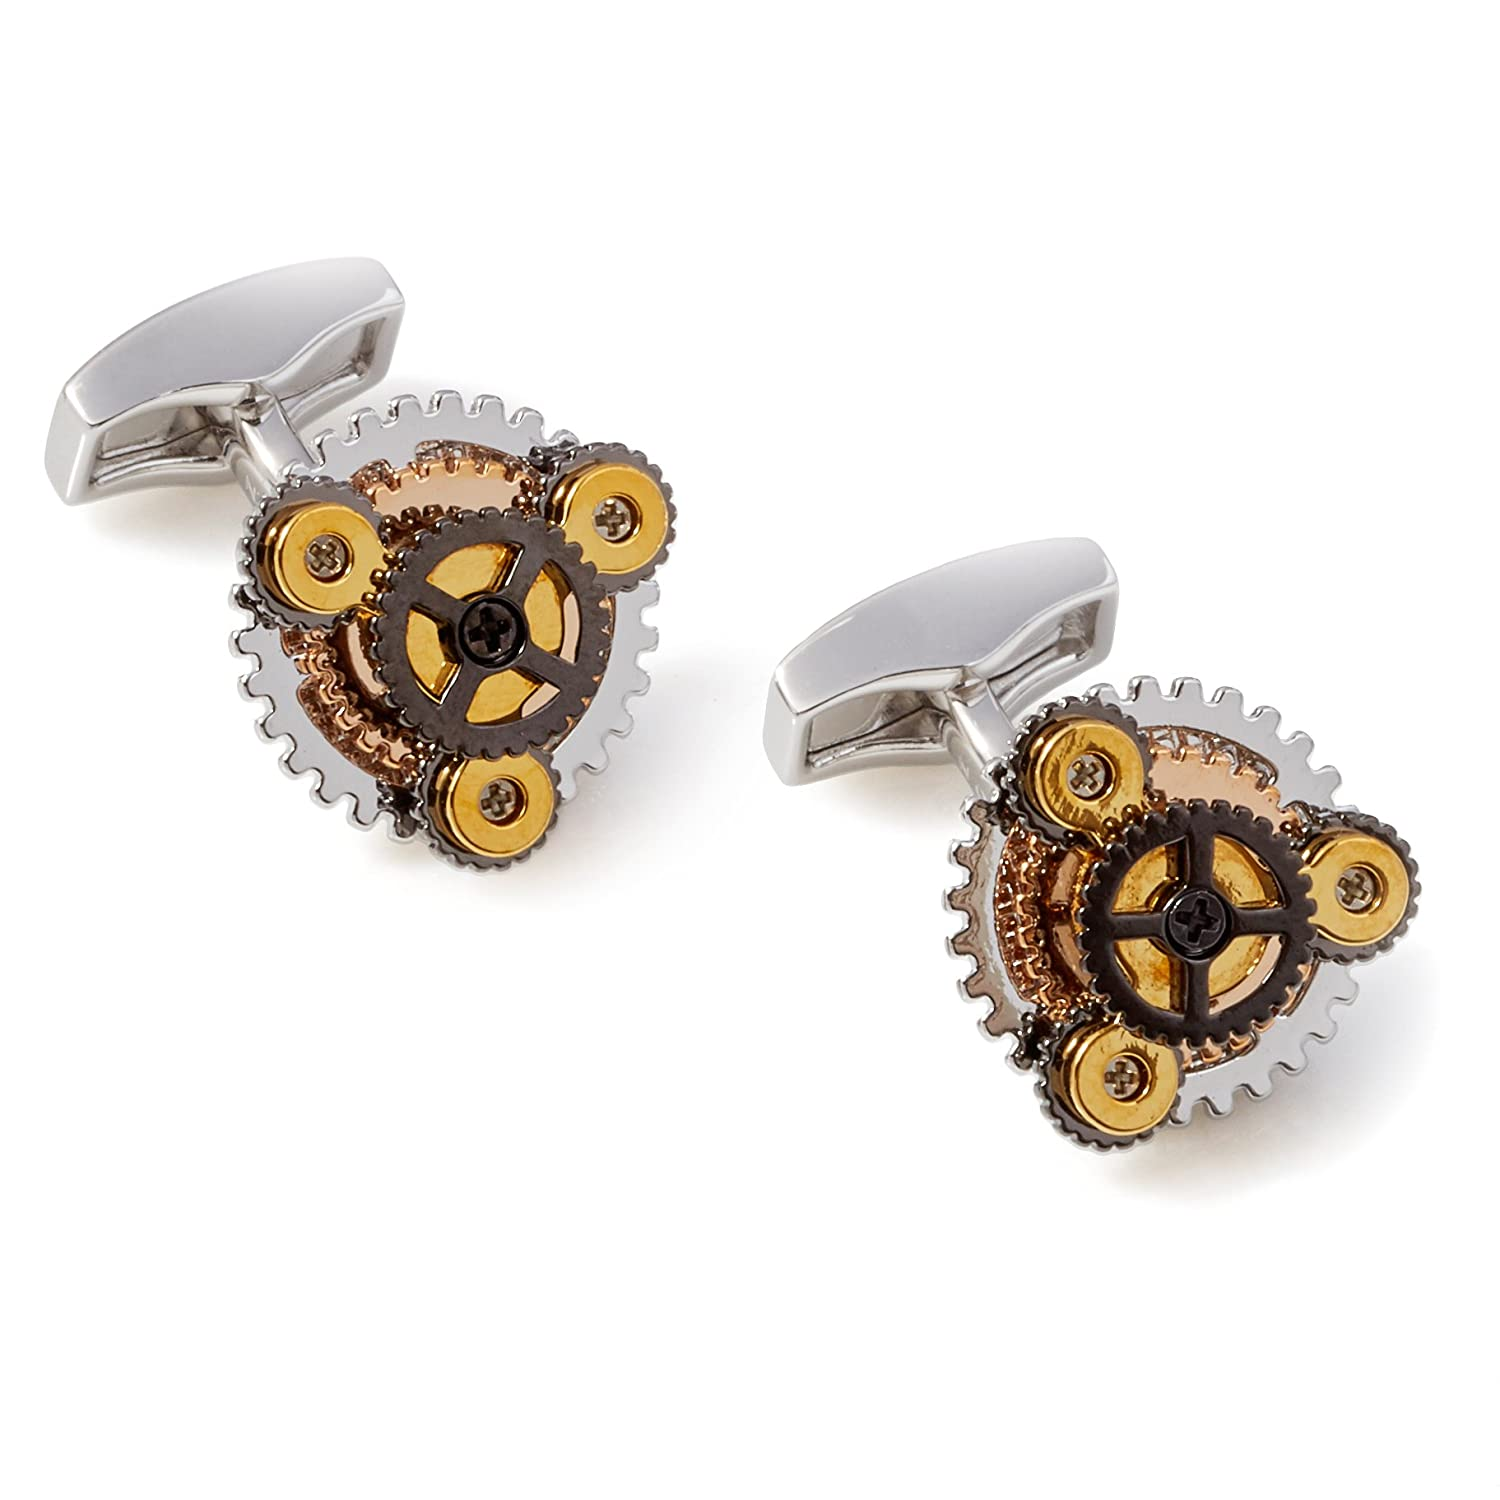 Tateossian Silver Rotondo Gear Cufflinks CL3959